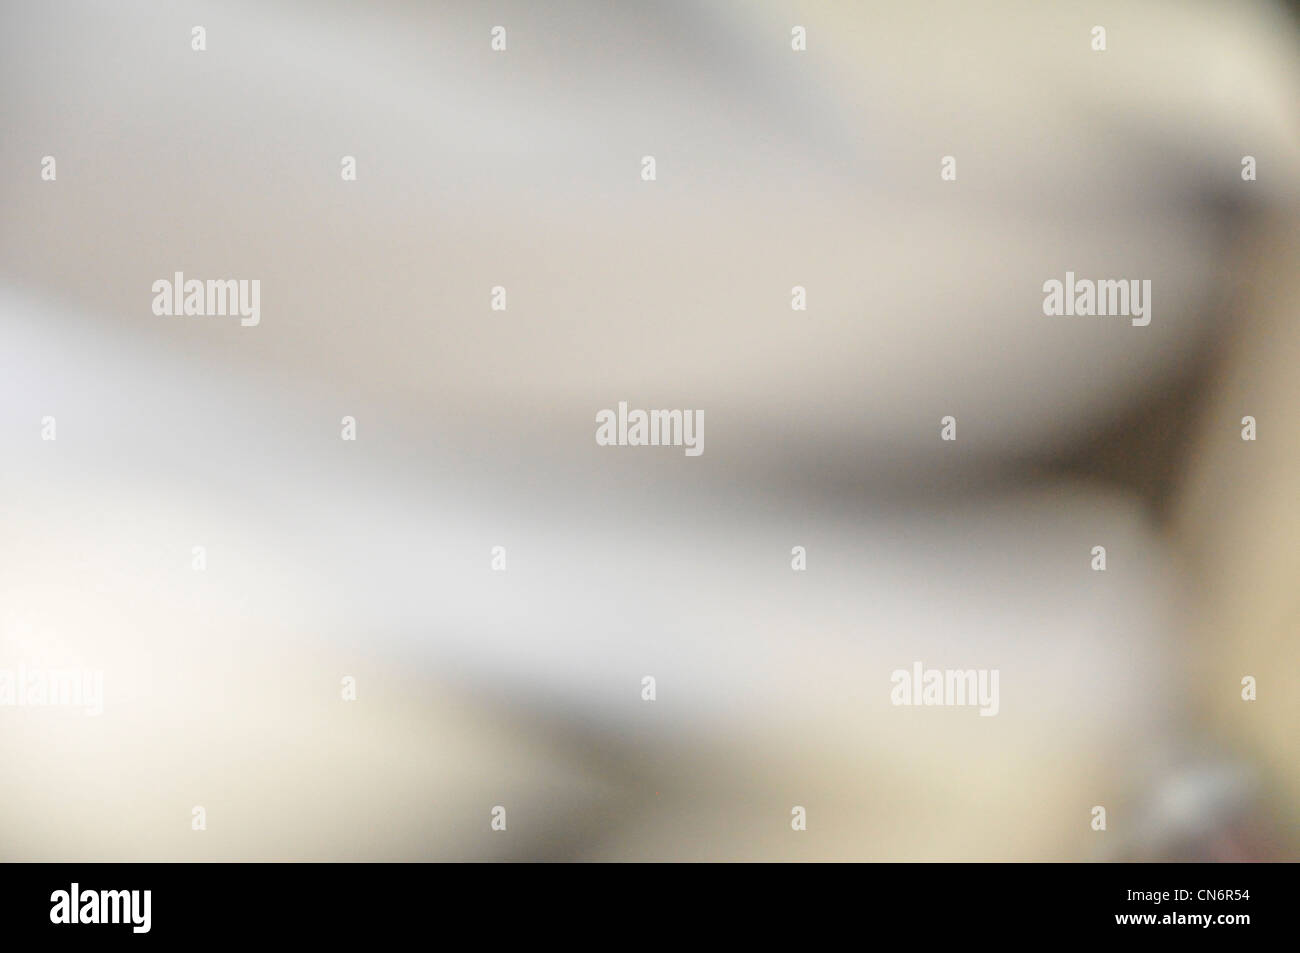 Abstract unfocused white gray background - Stock Image